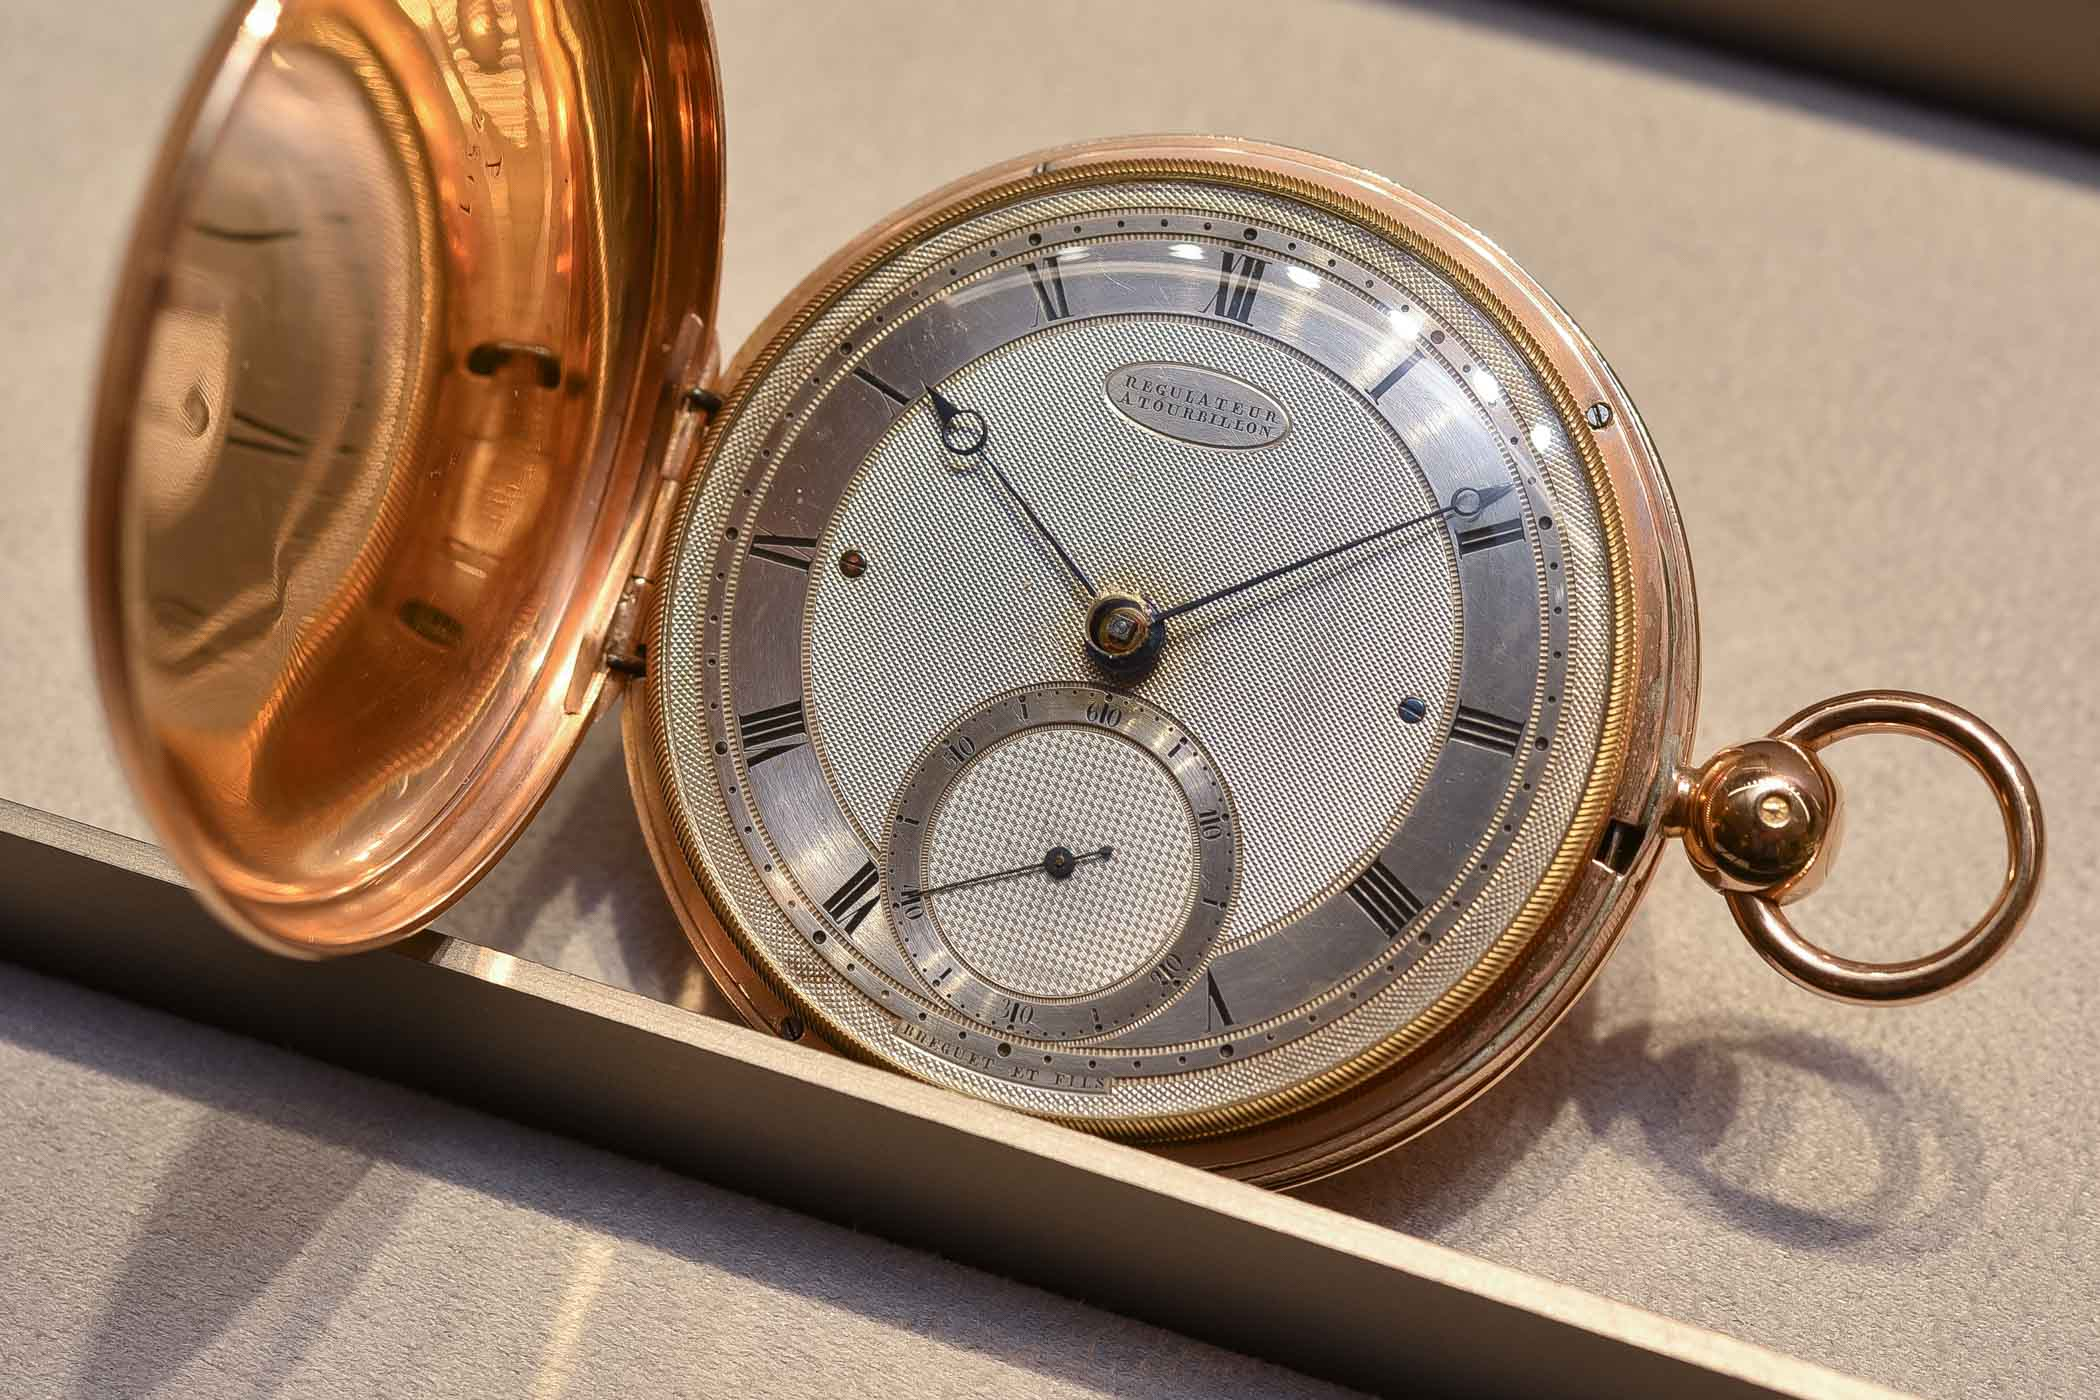 Breguet Guillochage Engine Turning technique in-depth - 10